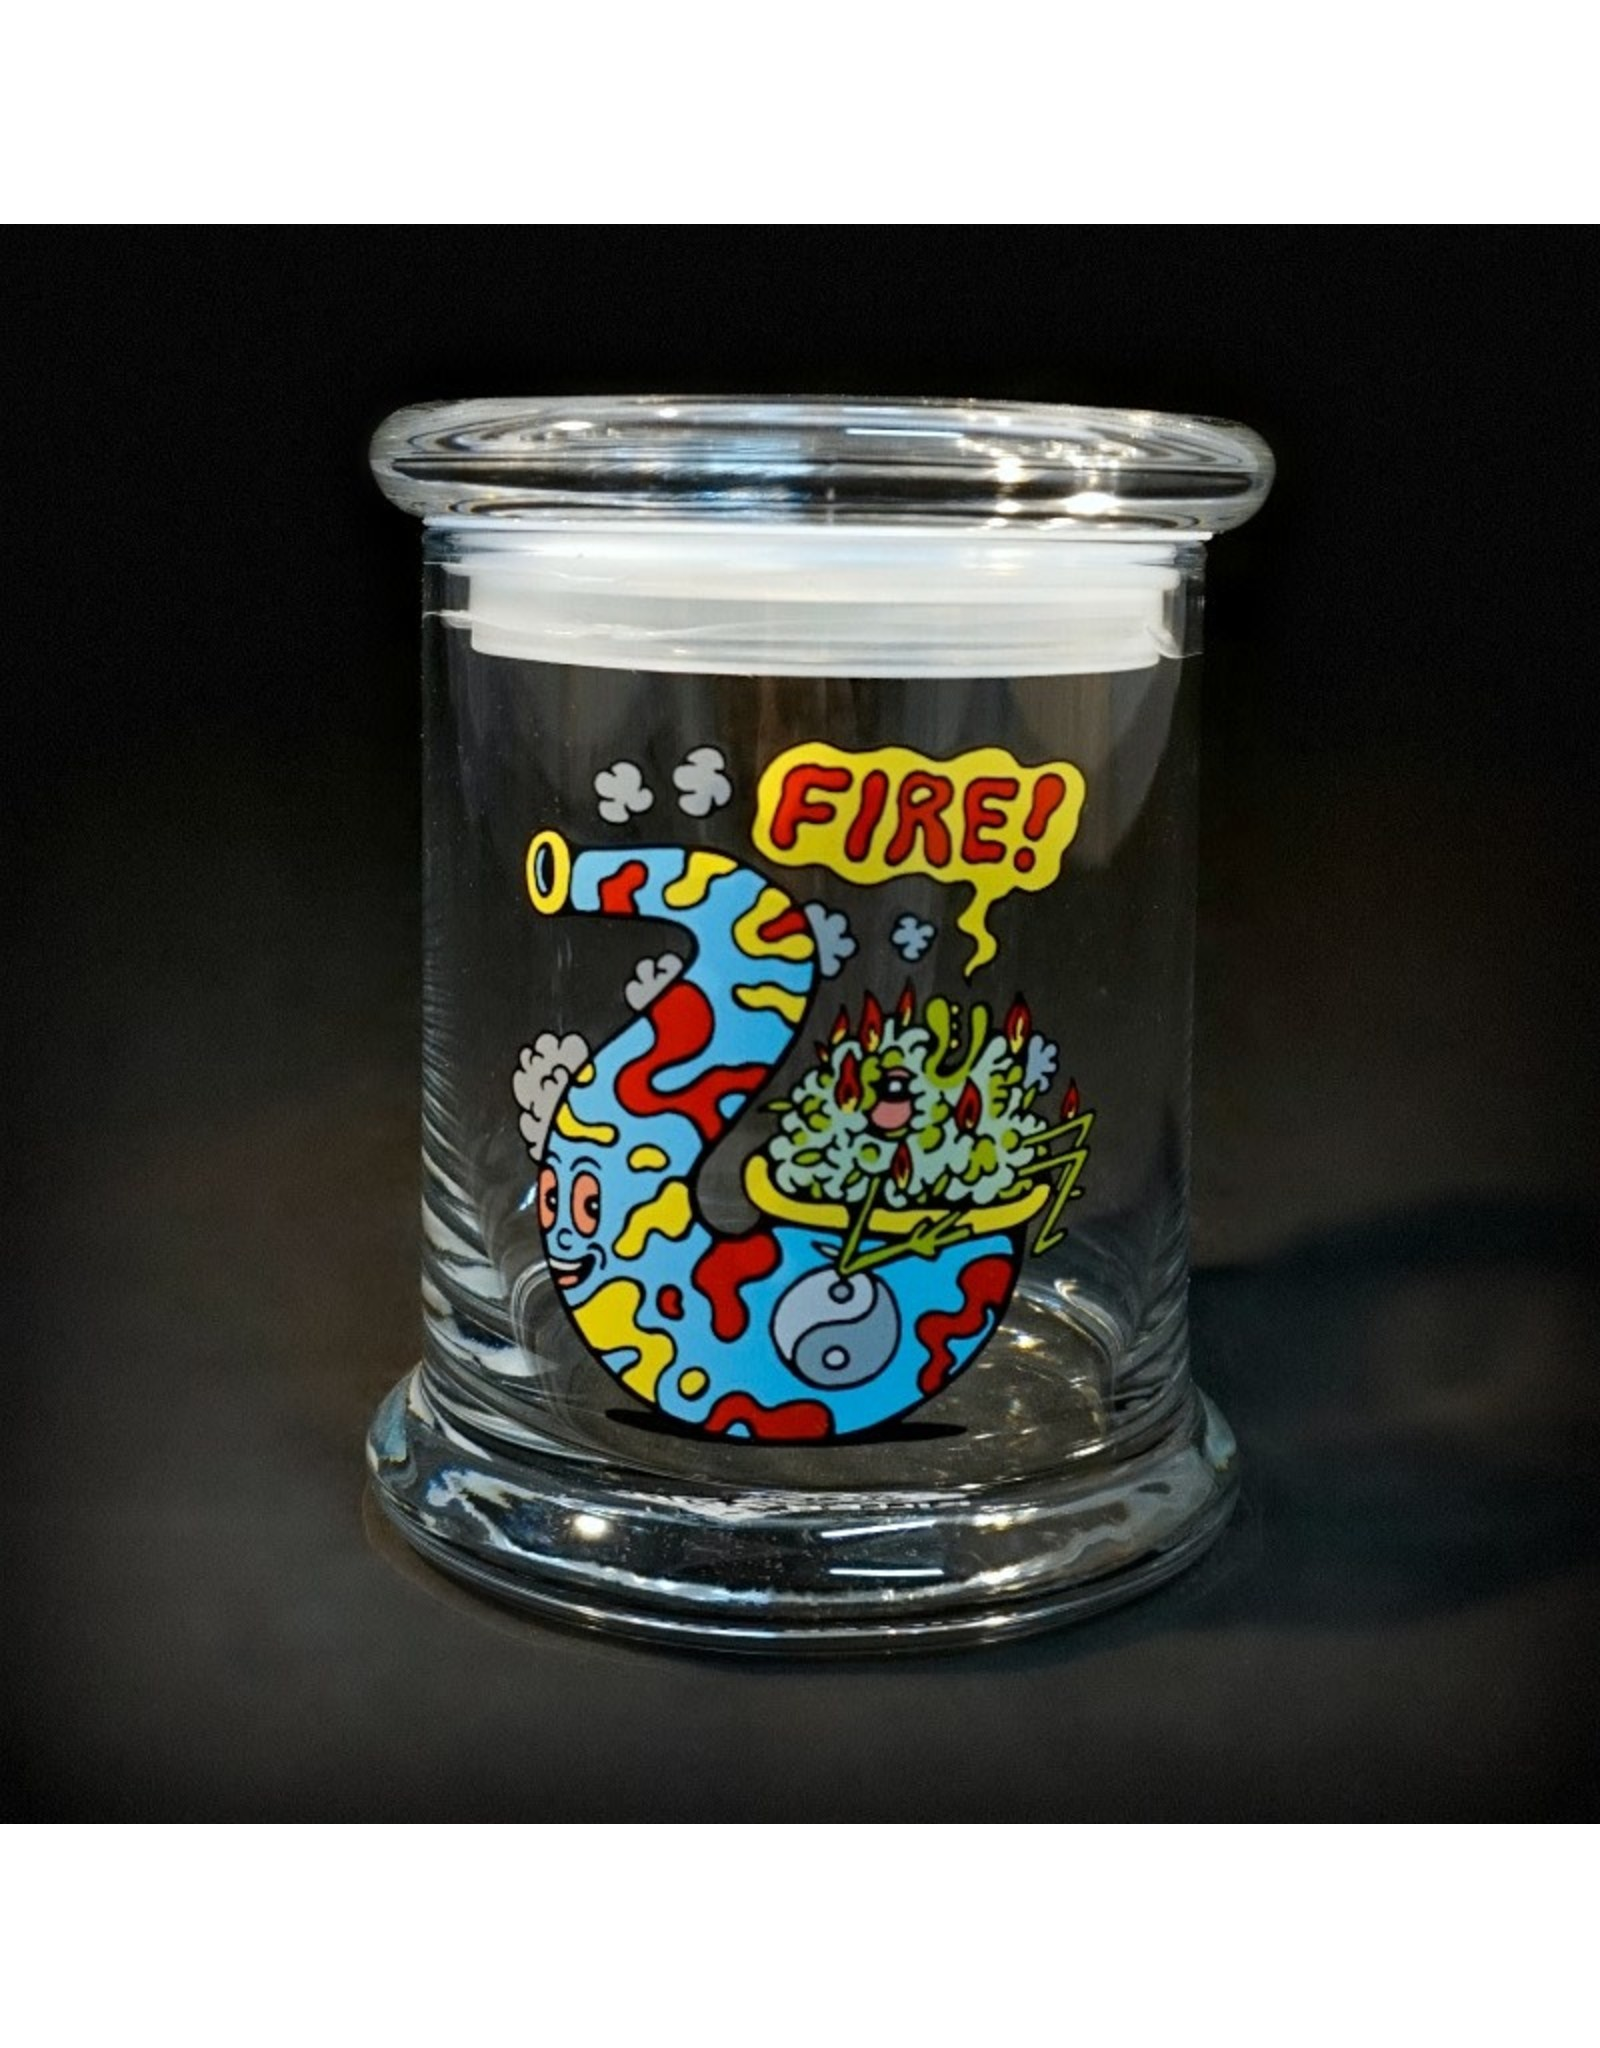 420 Science 420 Science Jars Large Fire Bud Pop Top